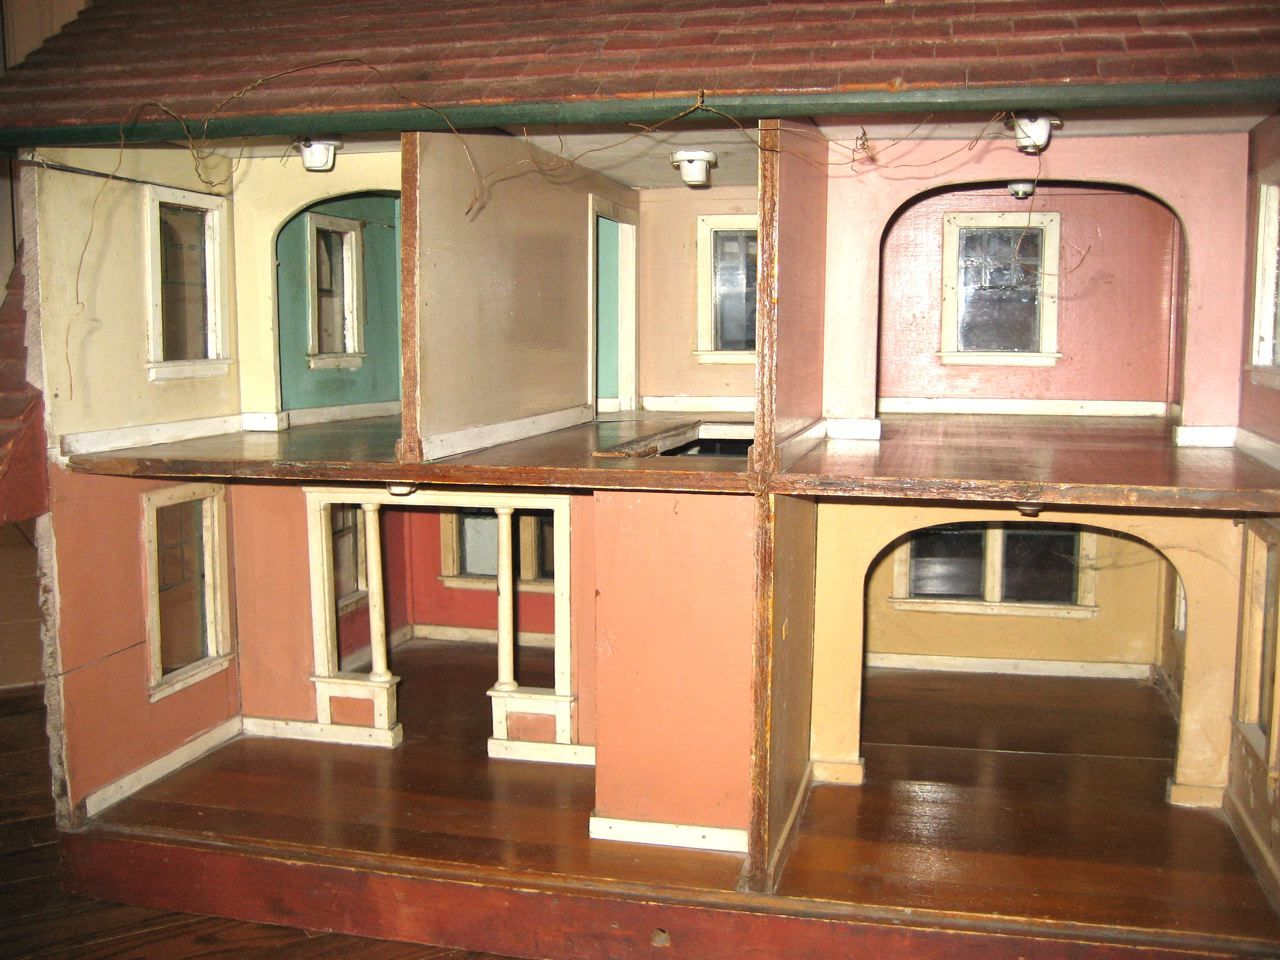 Susan's Mini Homes: Antique Dollhouse - Susan's Mini Homes: Antique Dollhouse Dollhouse Designs For The